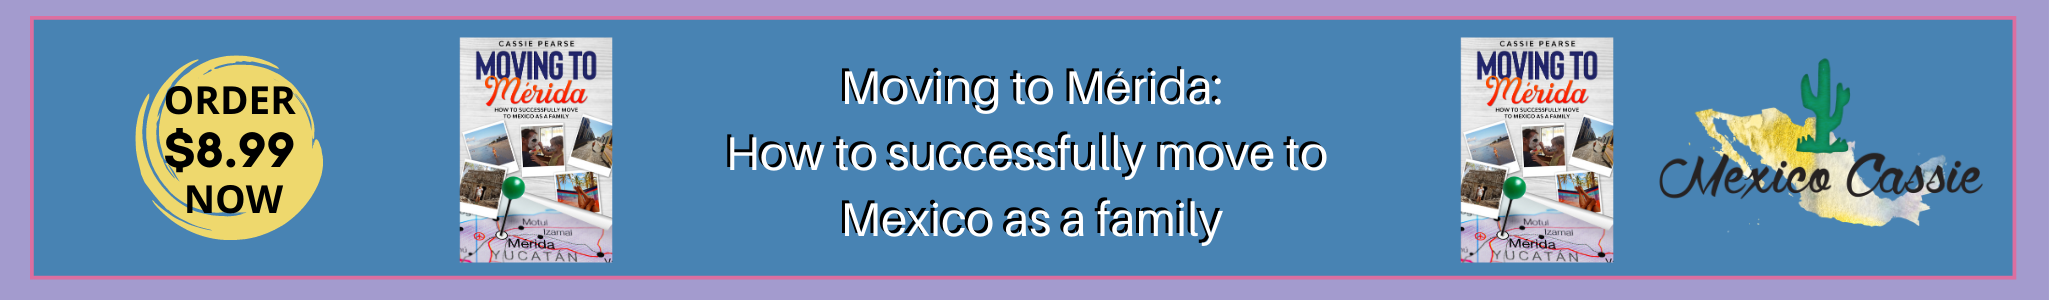 moving to merida - how to successfully move to mexico as a family - cassie pearce - mexico cassie